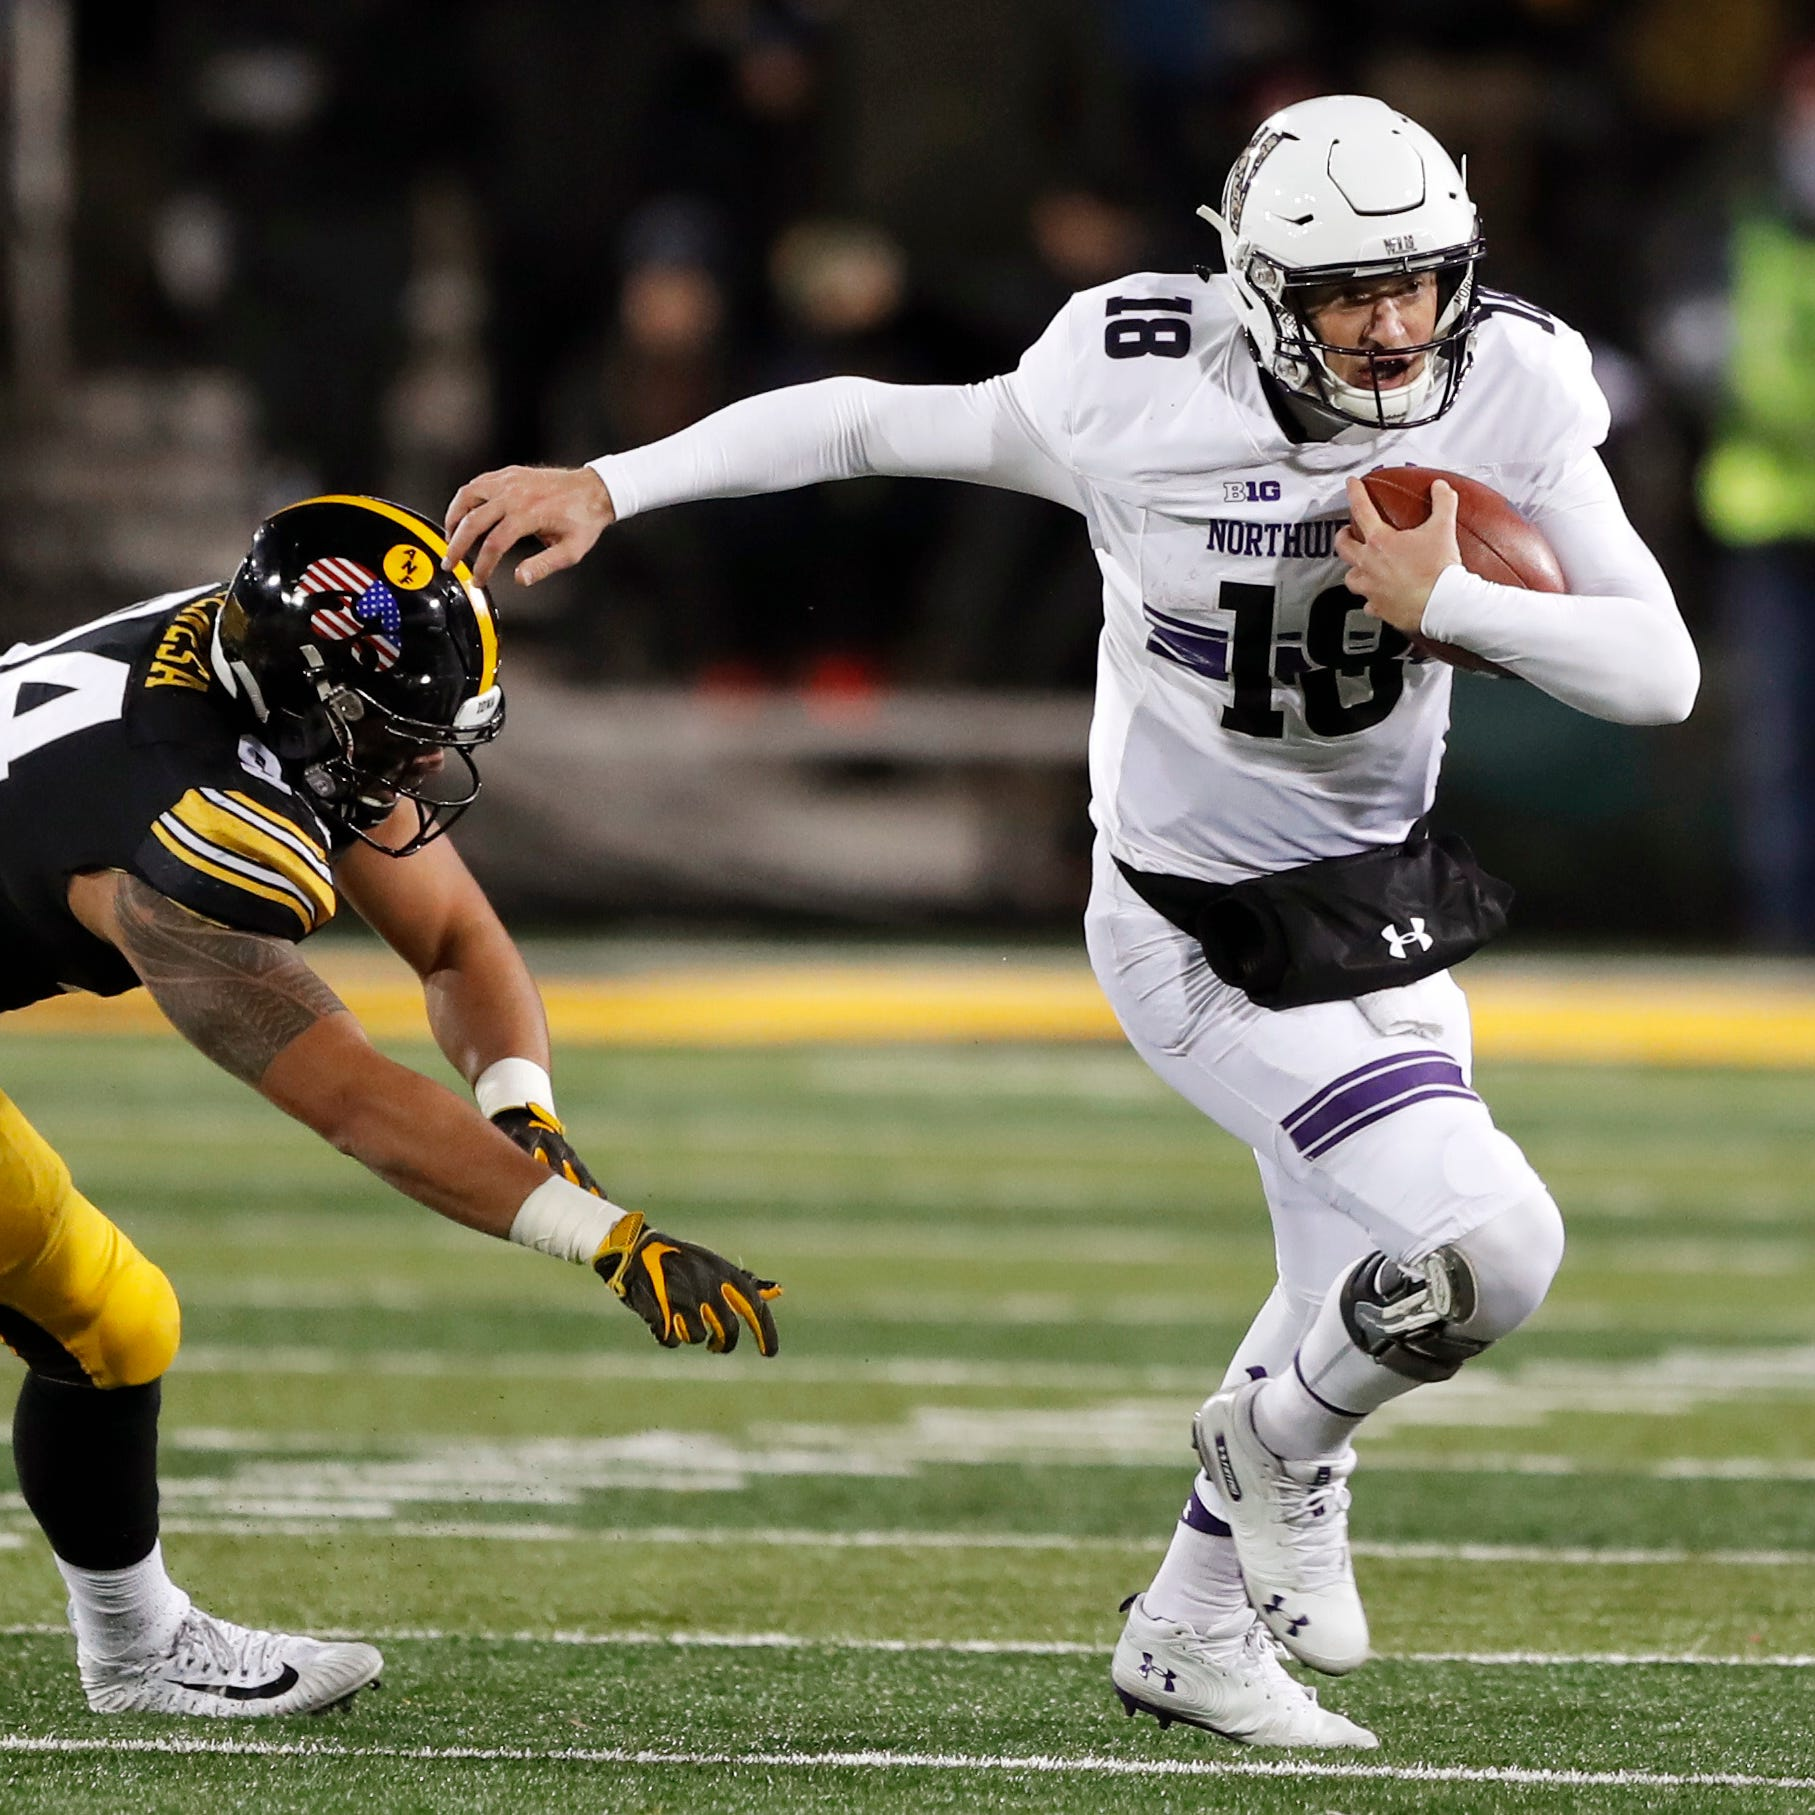 Leistikow's DVR Monday: Widespread blame warranted in Iowa's loss to Northwestern